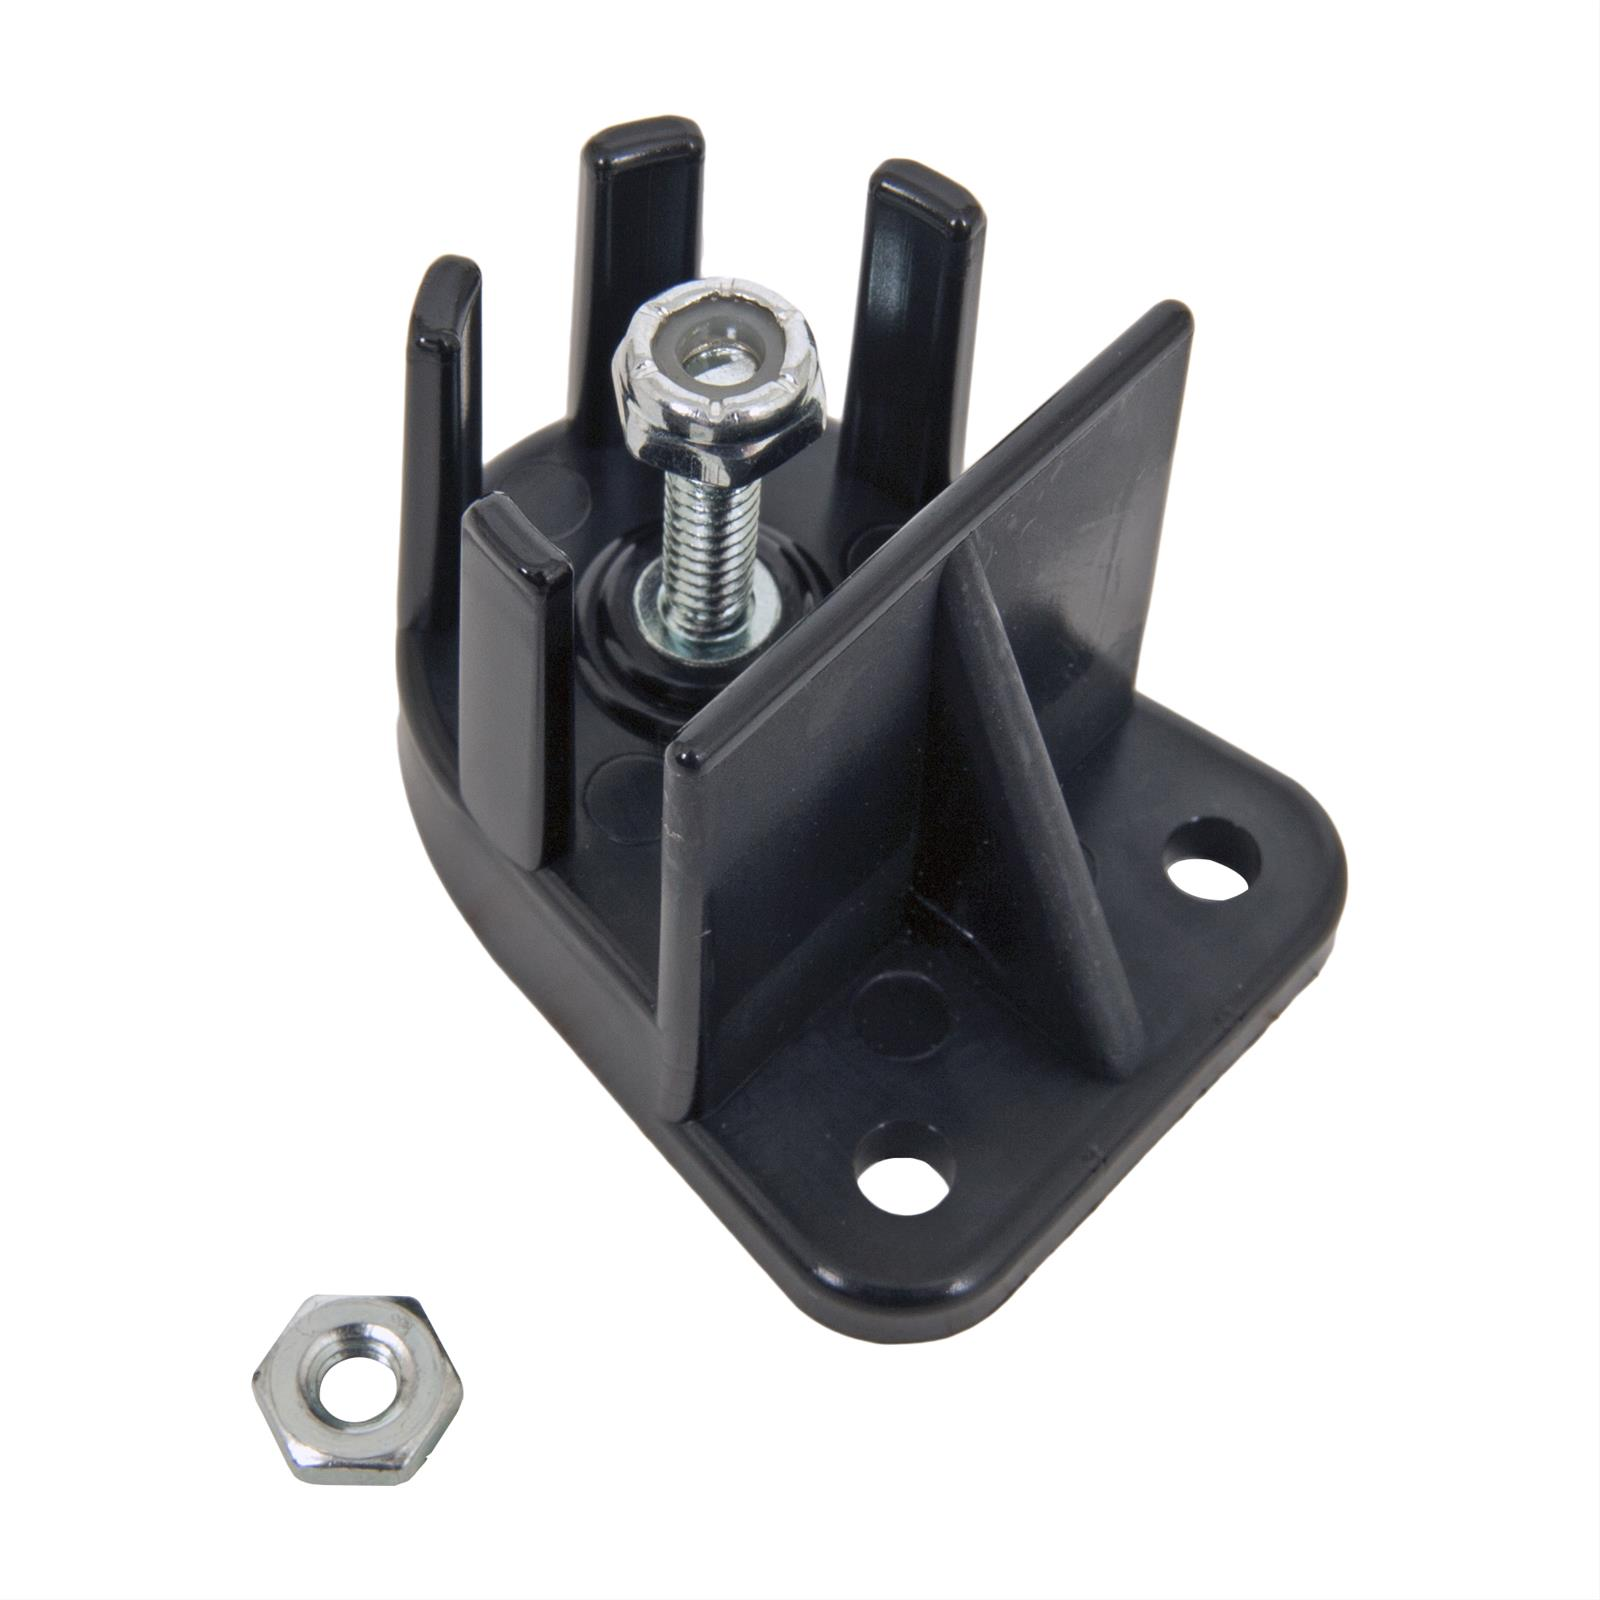 American Autowire Junction Block Connectors 500155 on battery junction block, power junction block, painless junction block, sensor junction block, concrete junction block, 4 post junction block, cable junction block,